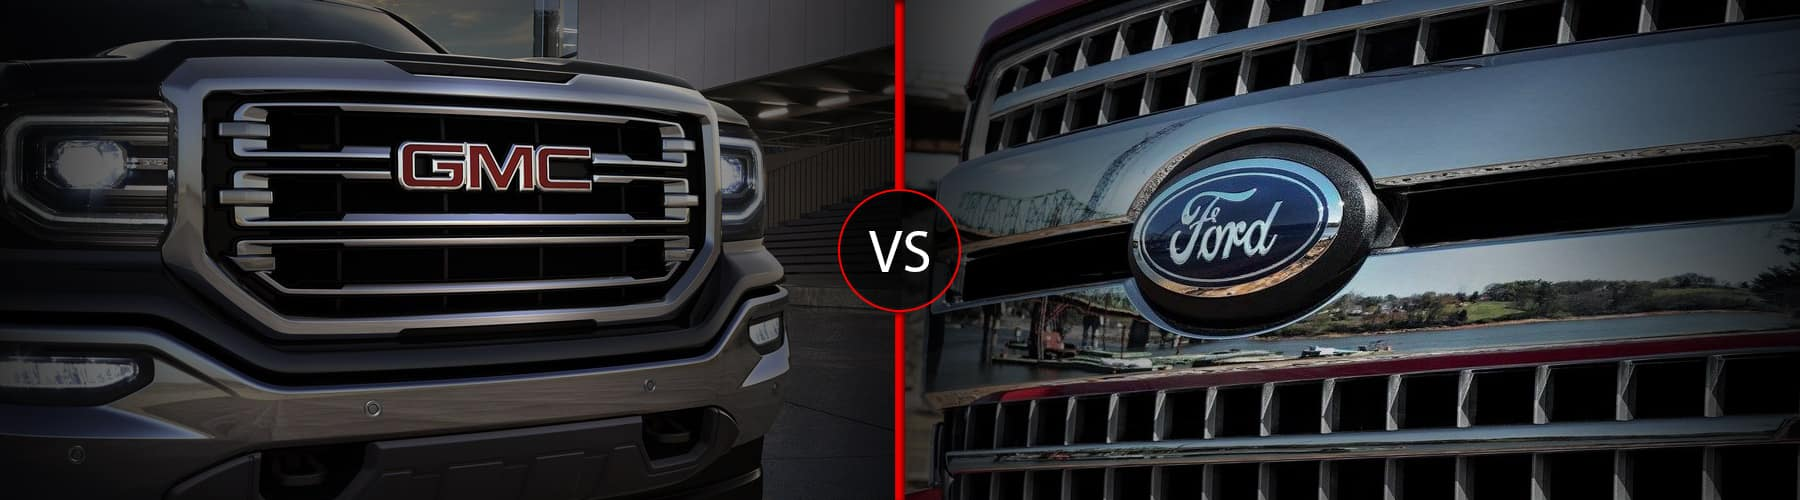 GMC Vs. Ford